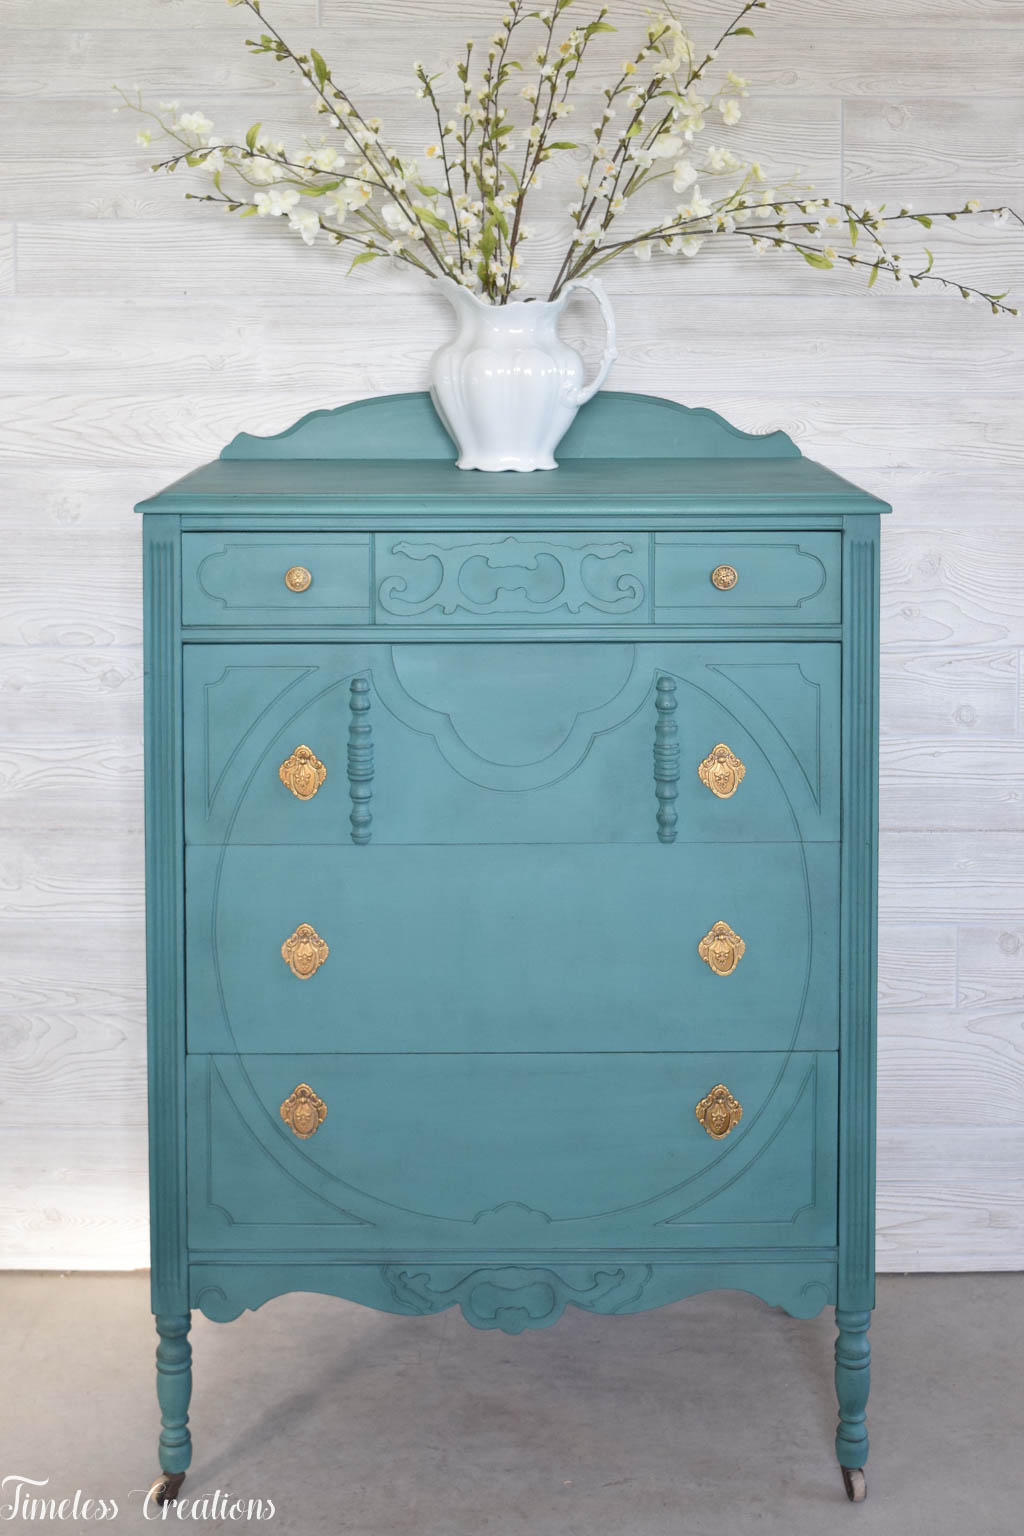 Marvelous Antique Dresser Free Shipping Pabps2019 Chair Design Images Pabps2019Com